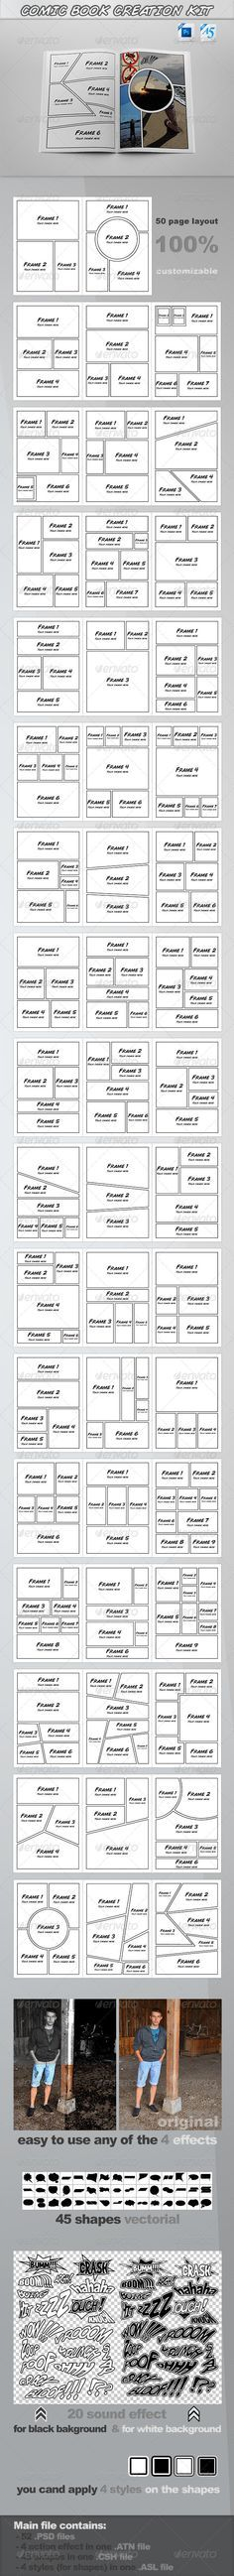 ComicBook Creation Kit Detail: 50 page templates size) & sound effects (two tipe , for black & white background) in 52 . Comic Book Layout, Comic Books Art, Comic Art, Book Art, Doodle Drawing, Comic Drawing, Drawing Tips, Comic Tutorial, How To Make Comics